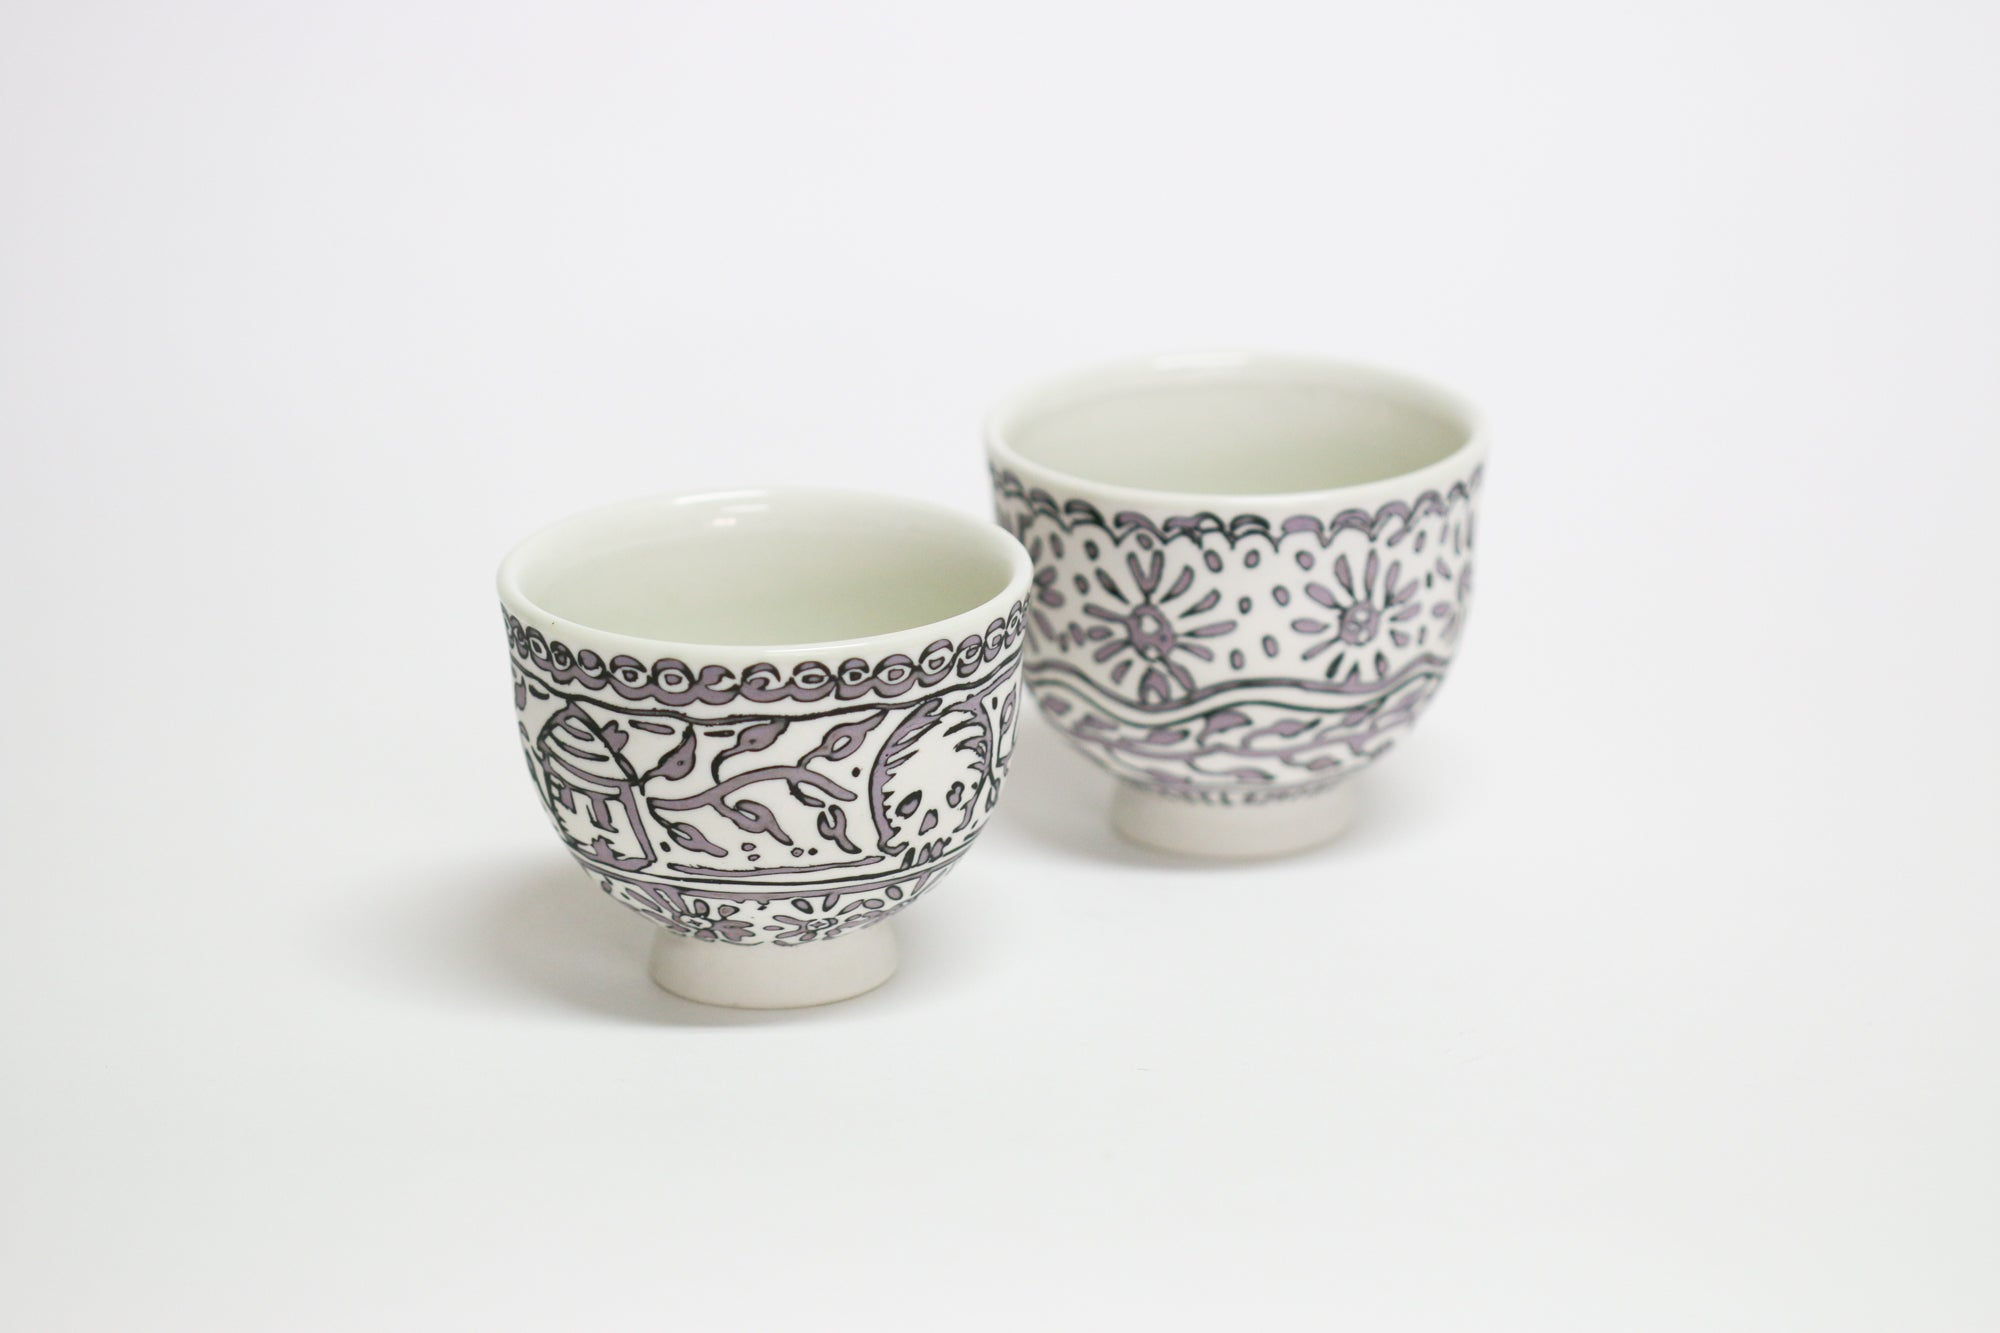 Inlay Porcelain Vessel